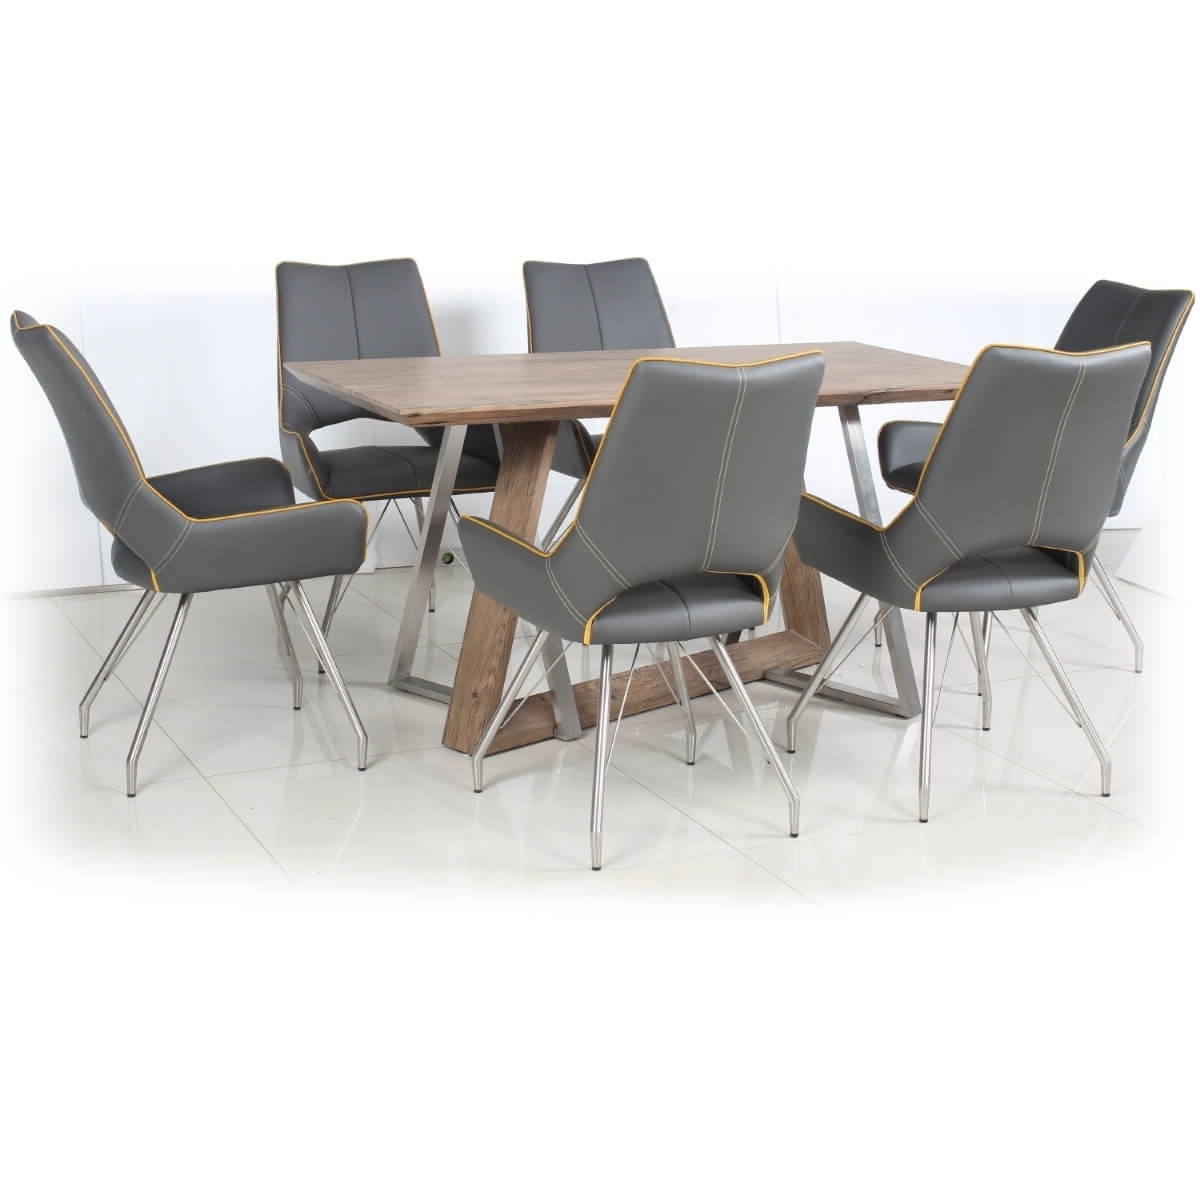 Most Recent Dining Set – Industrial Style Wood Dining Table And 6 Grey Dining For Dining Tables Grey Chairs (View 17 of 25)